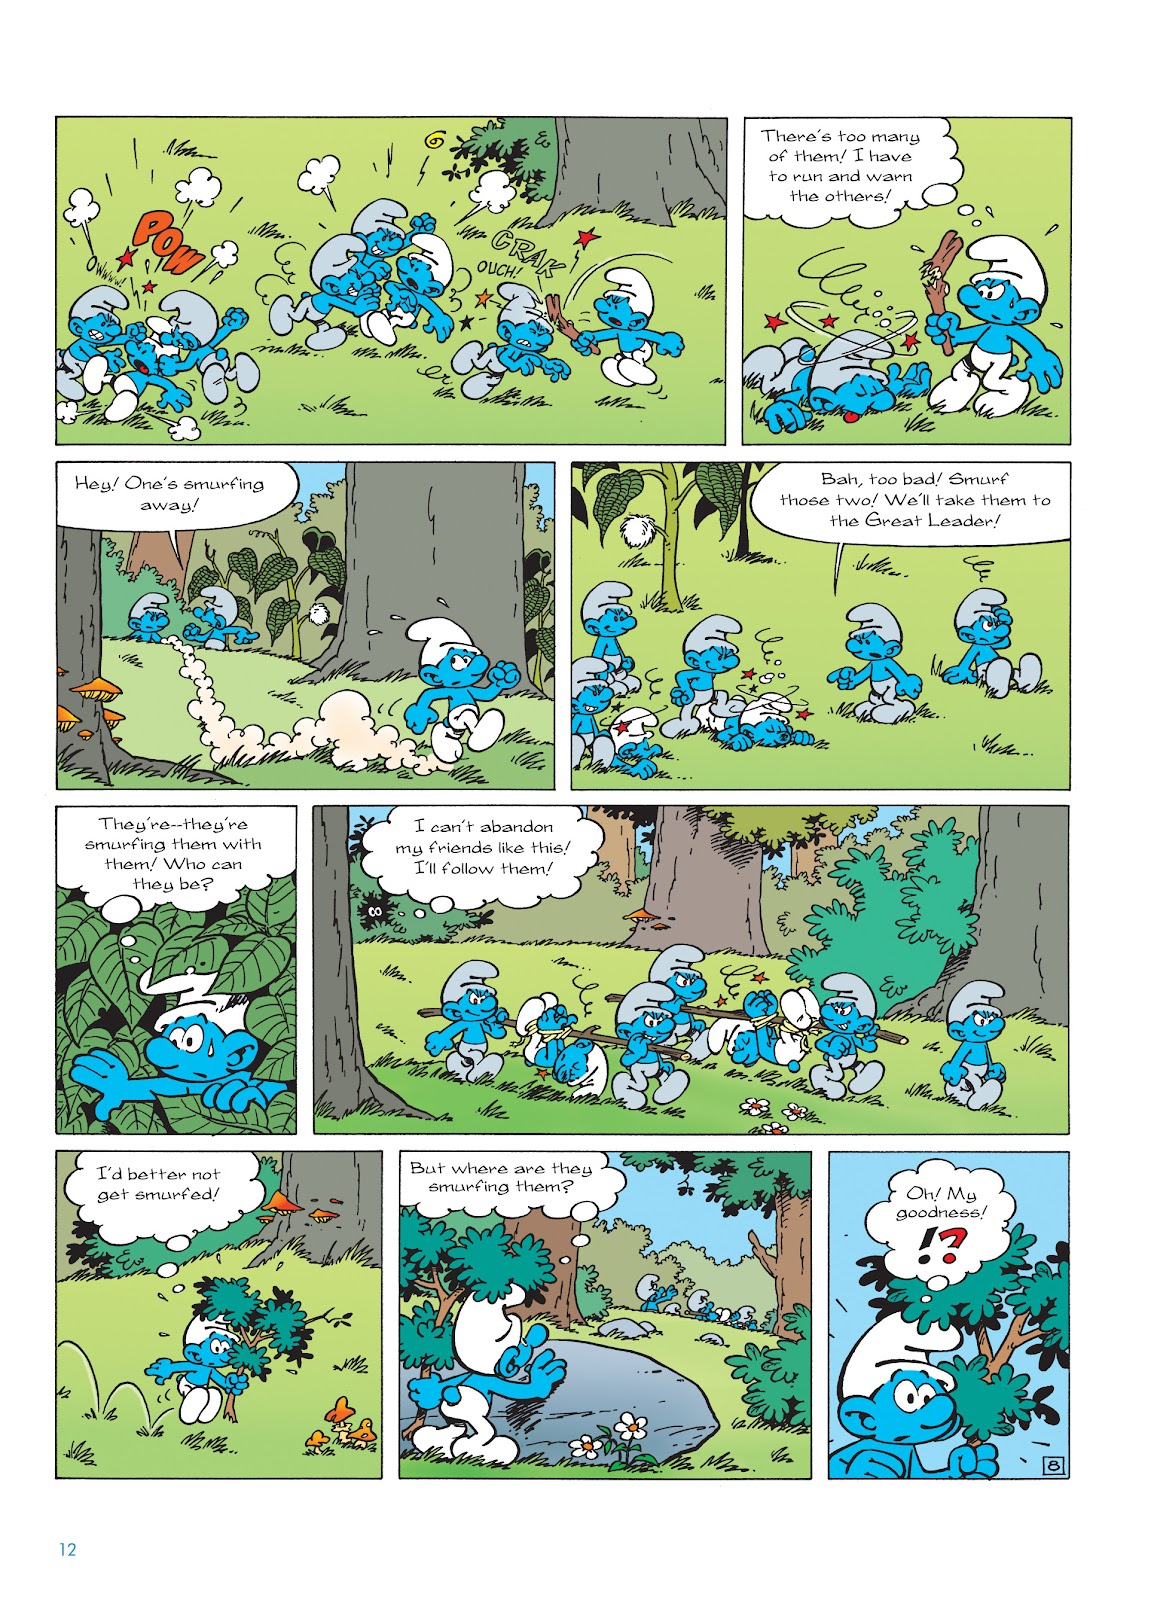 Read online The Smurfs comic -  Issue #22 - 13